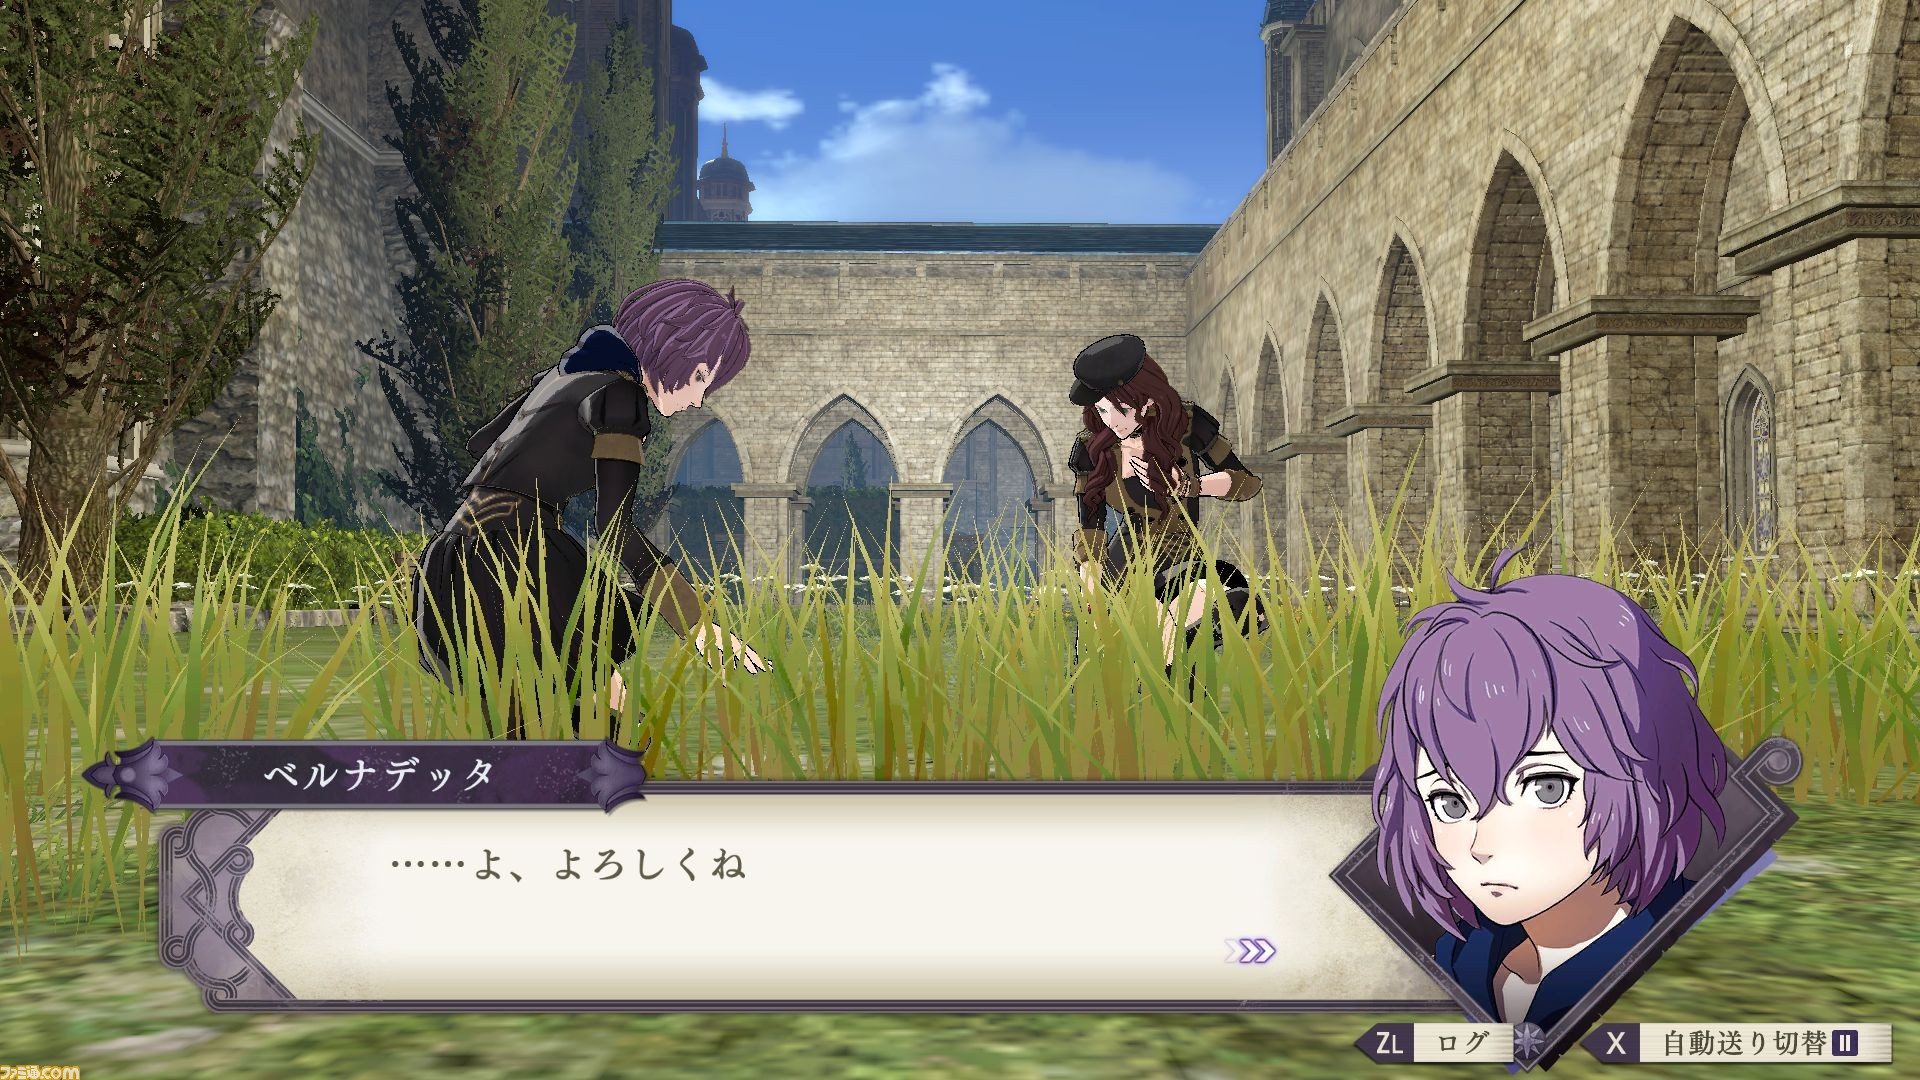 https://www.perfectly-nintendo.com/wp-content/uploads/sites/1/nggallery/fire-emblem-three-houses-15-05-2019/98.jpg